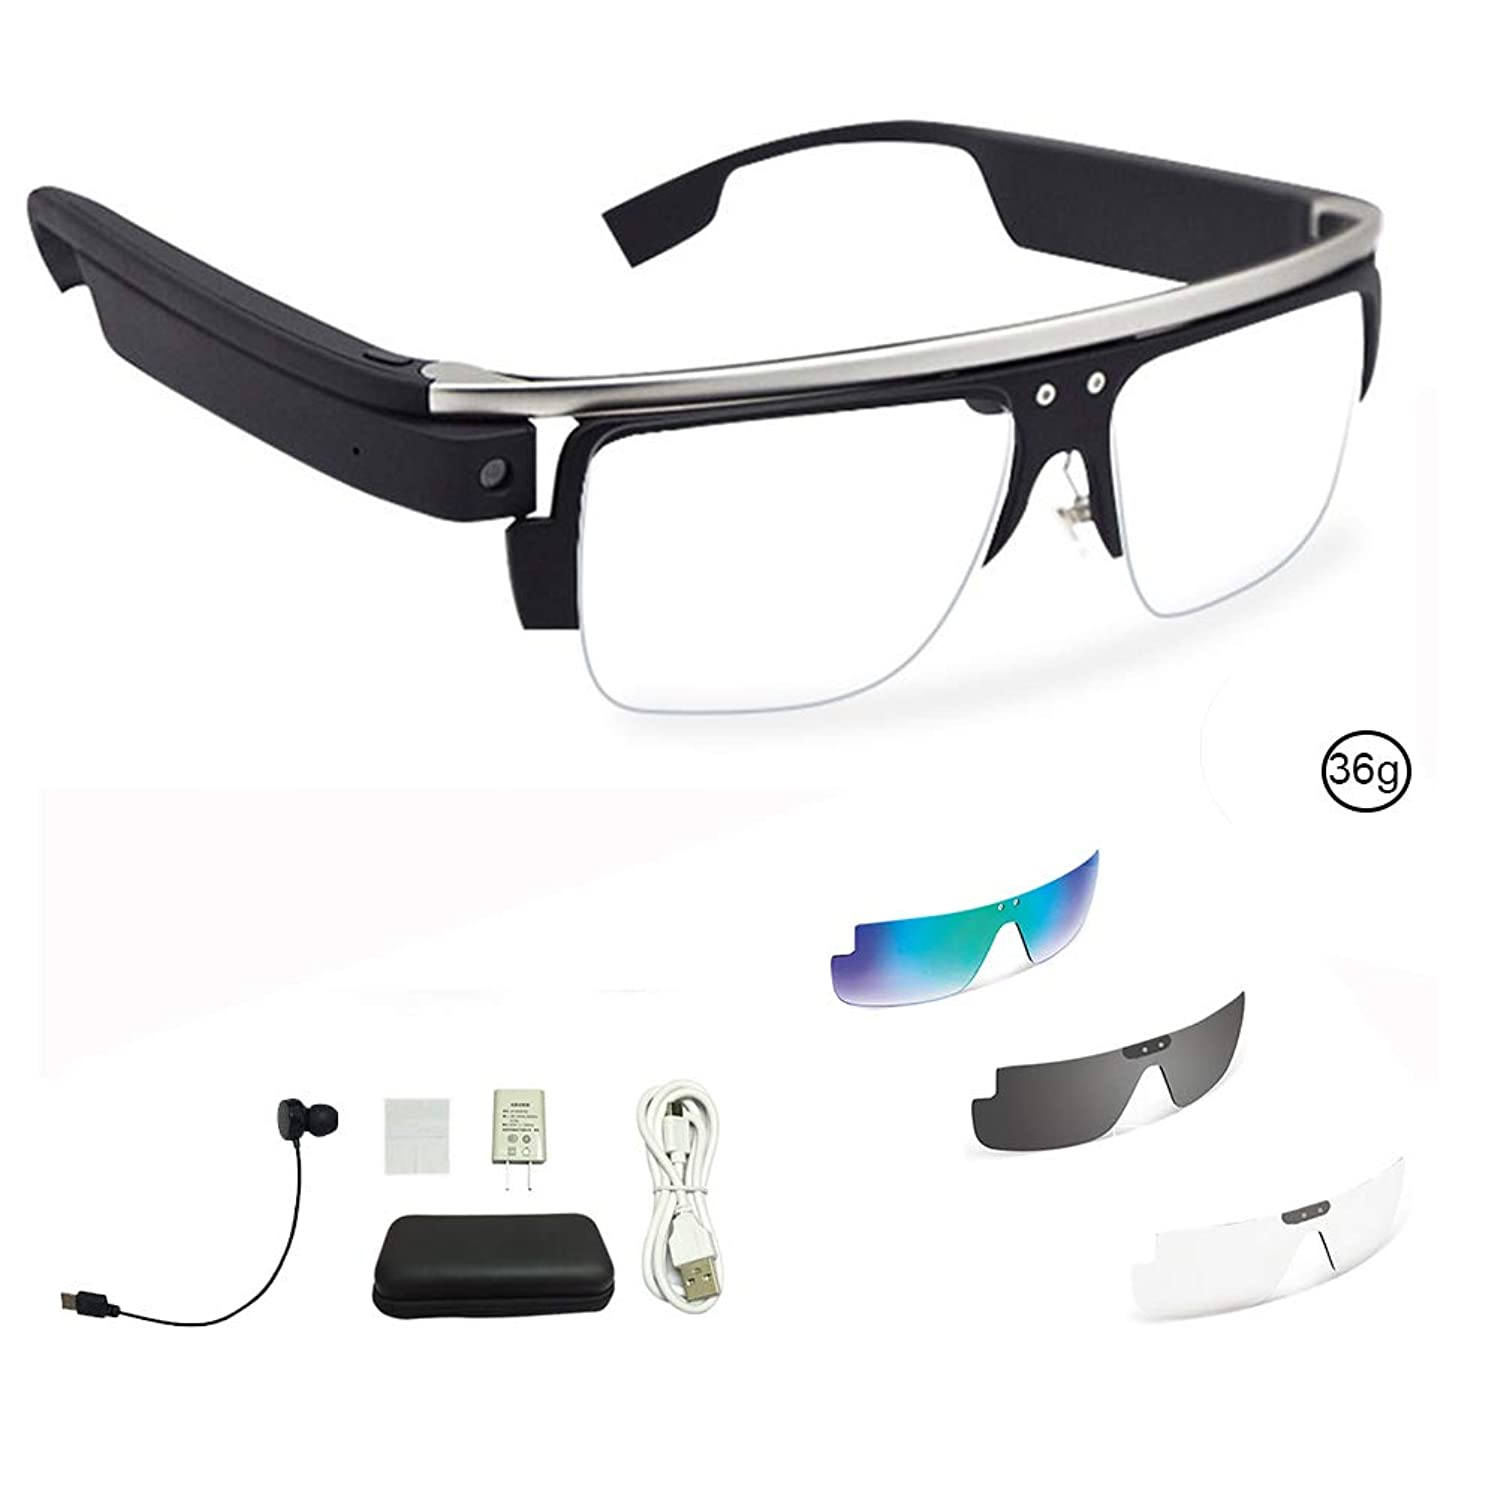 Smart Bluetooth Glasses Charging Type with Replaceable Polarized Lenses UV Protection Sunglasses Microphone Hands-Free Stereo, Suitable for Urban Sports Such as Cycling